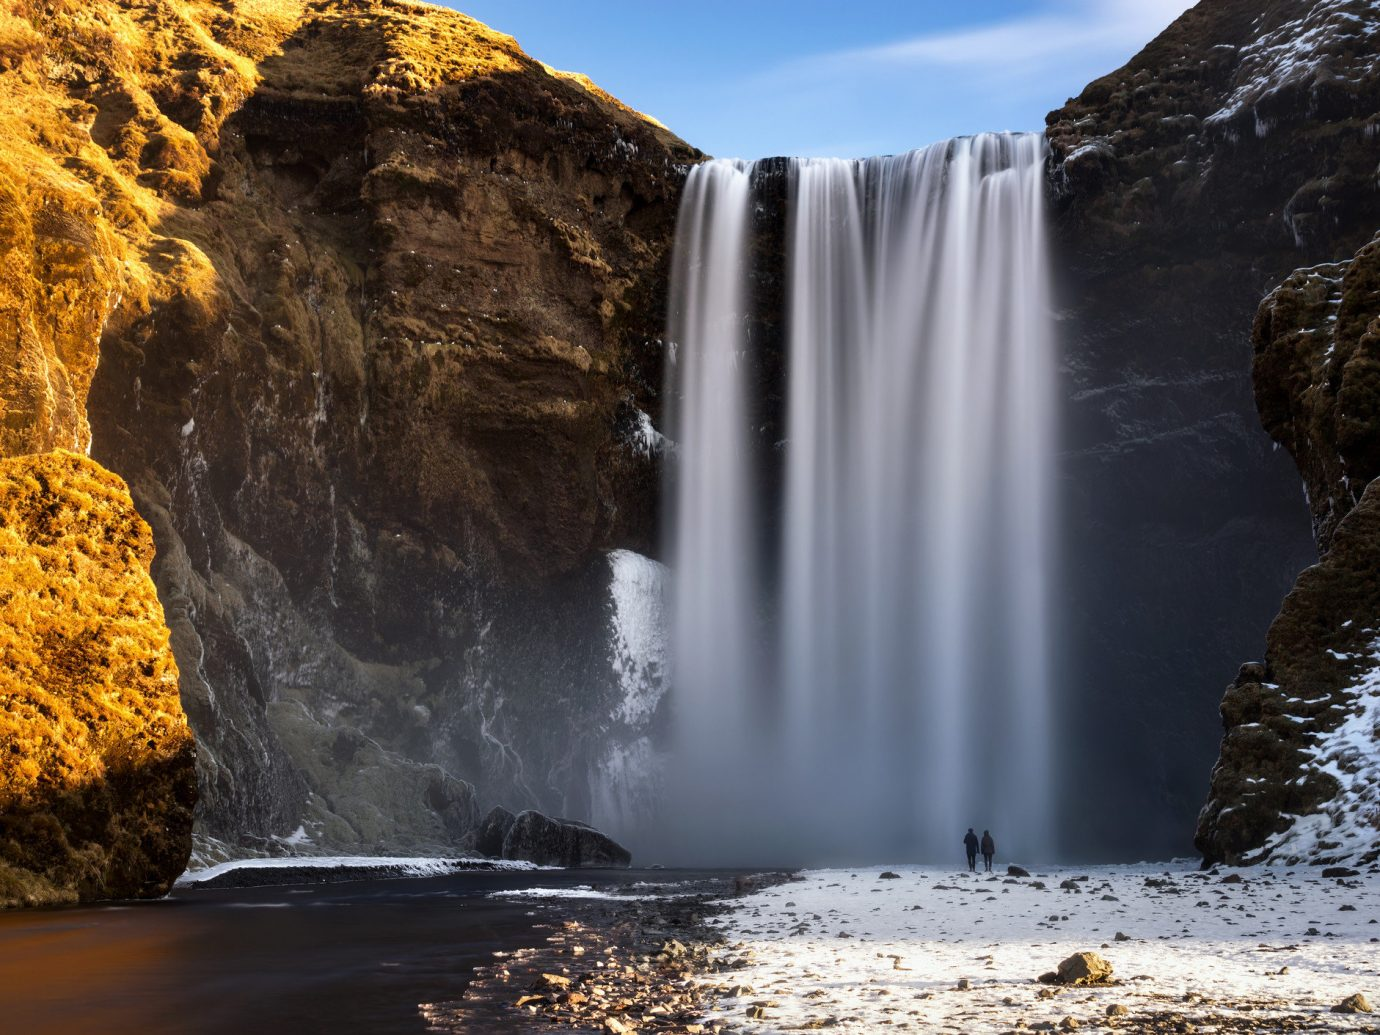 Editors Picks Iceland Luxury Travel Outdoors + Adventure Trip Ideas outdoor Nature mountain Waterfall water body of water water feature watercourse rock sky landscape chute geology escarpment formation stream tree cliff hillside